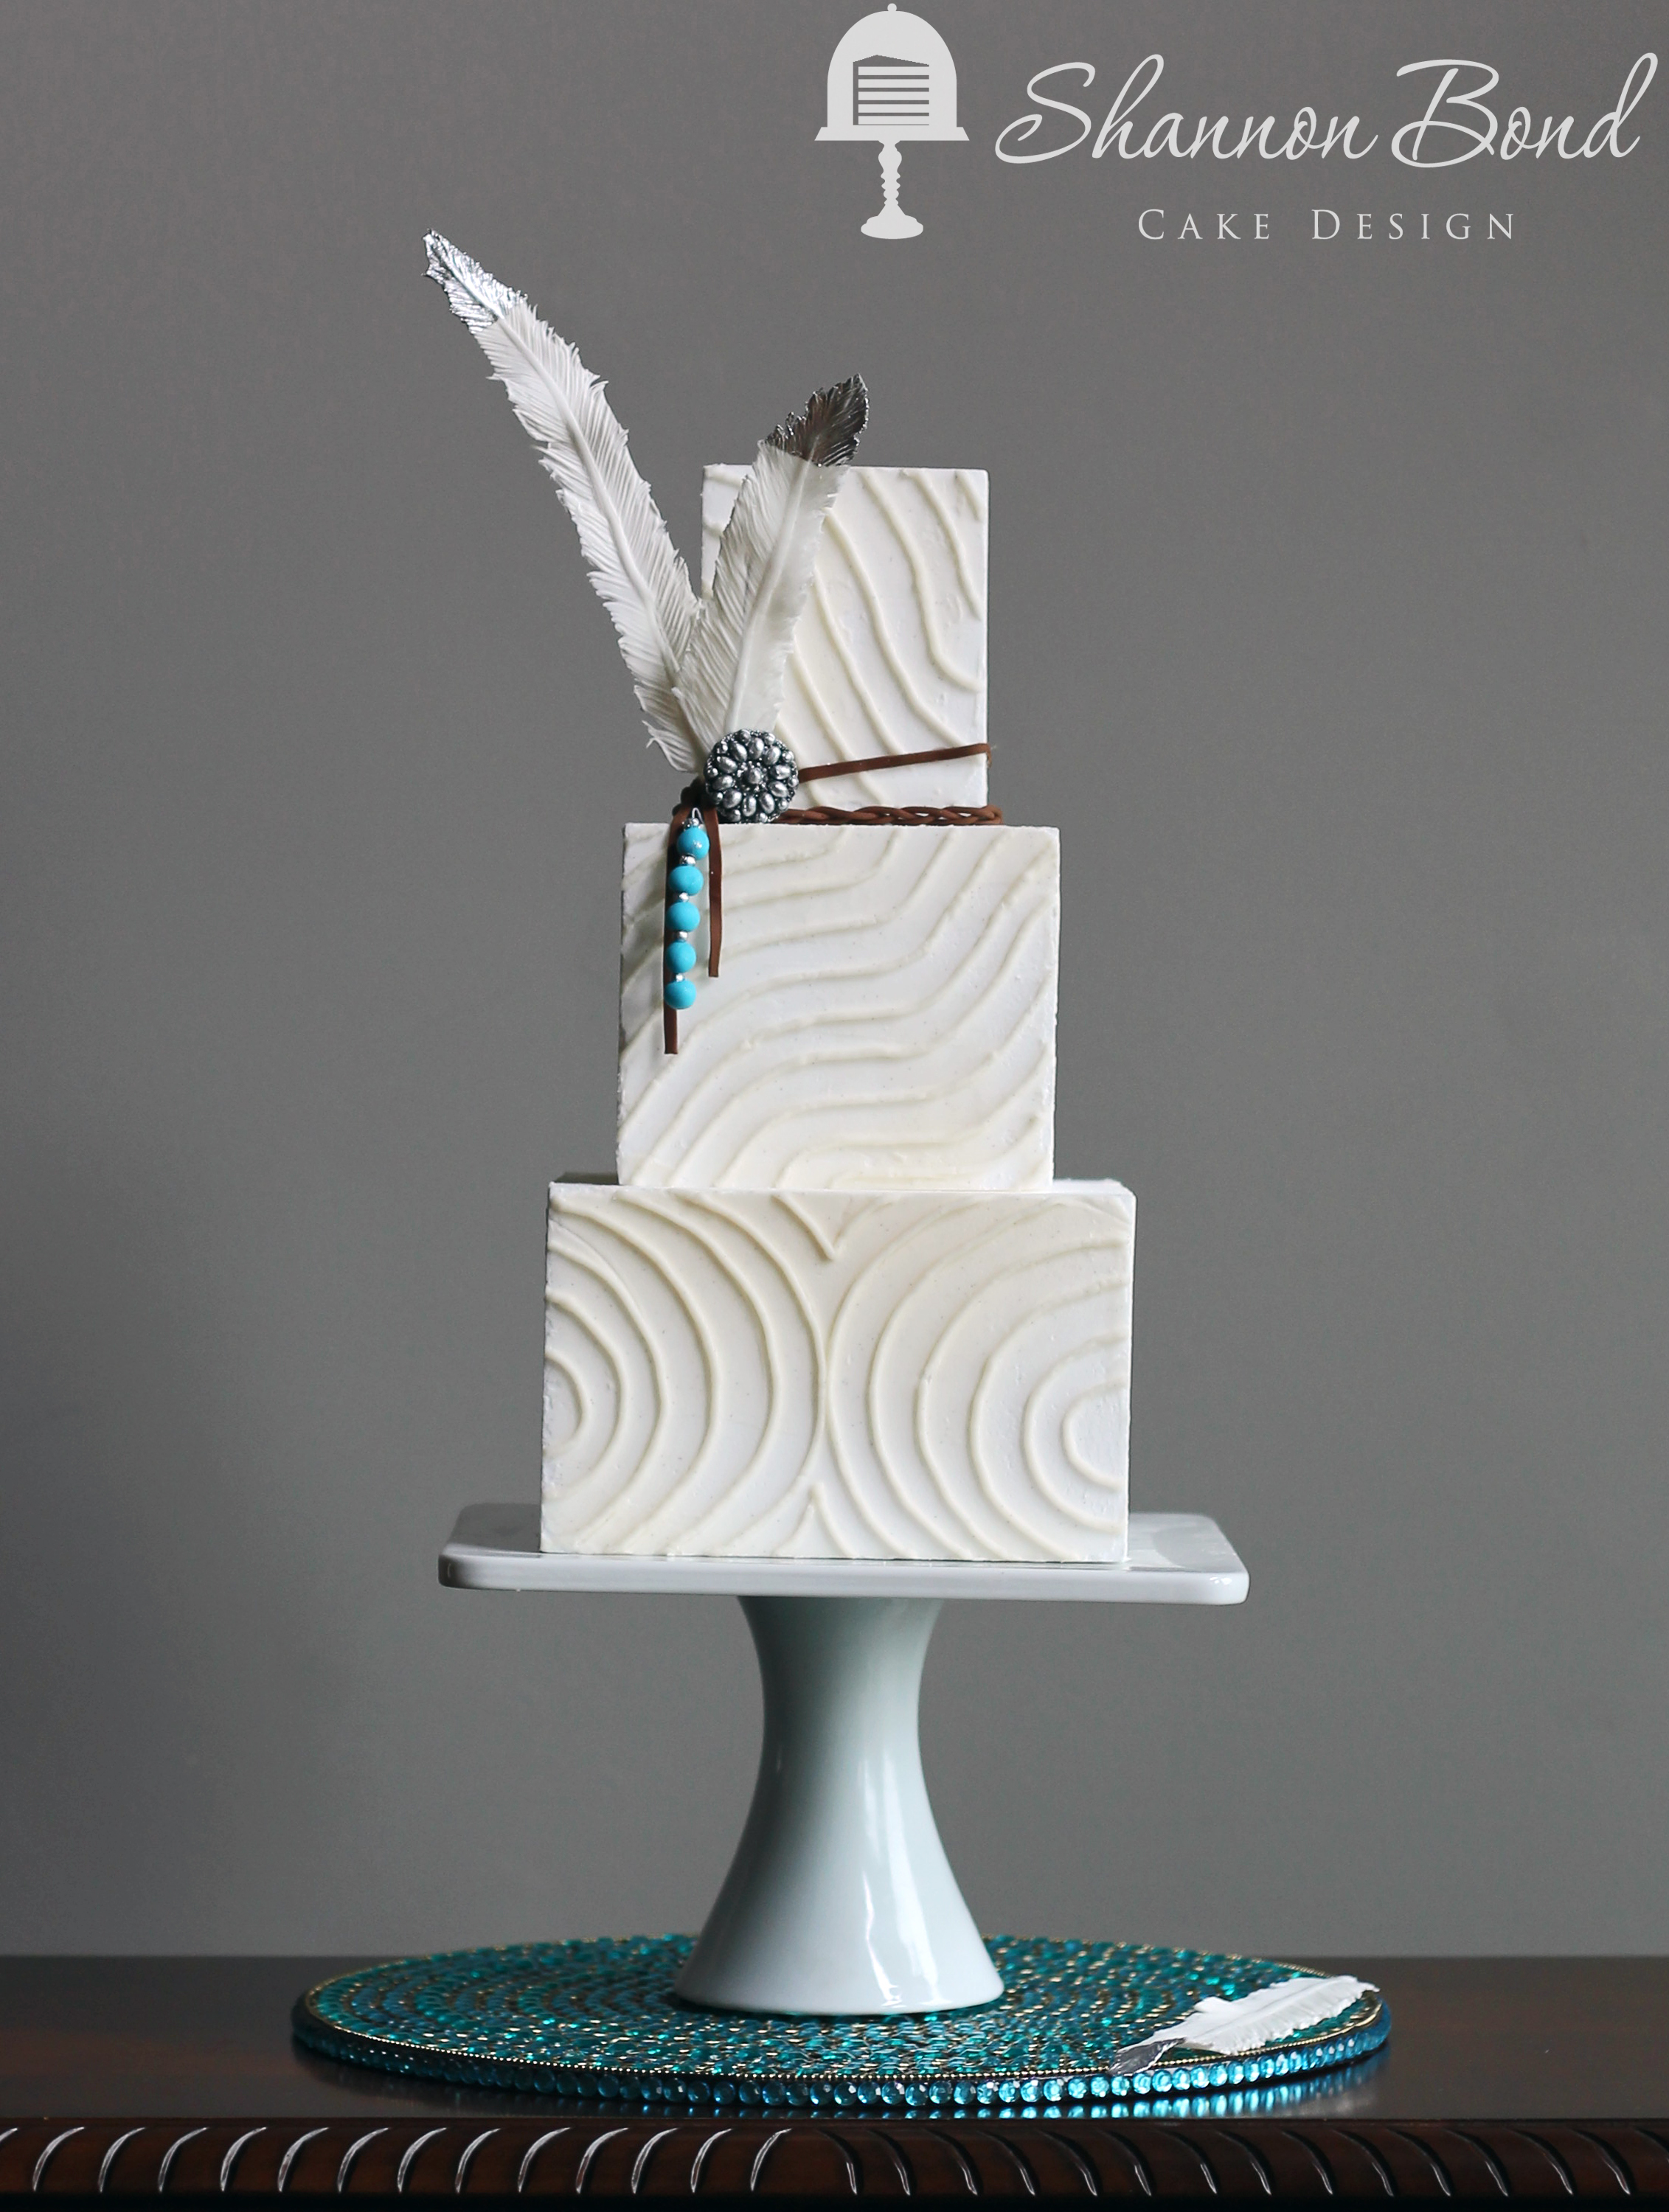 White Bohemian fondant wedding cake with feather